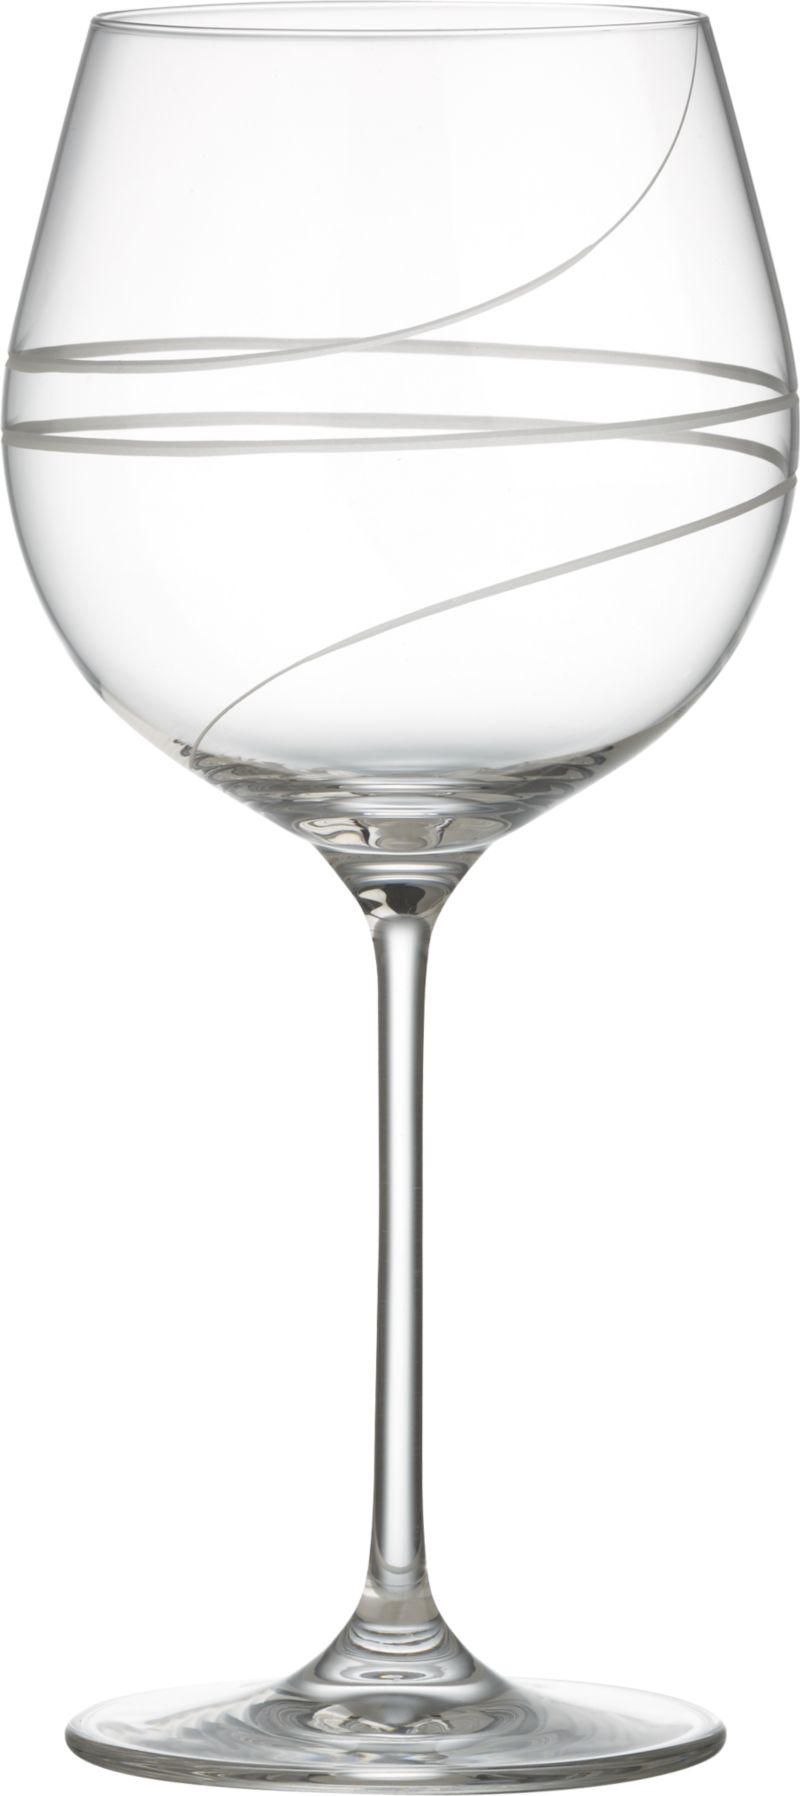 Elegant hand-engraved spirals add élan to the classic balloon wine glass. Modern machine-blown process mimics handblown glass at an affordable price.<br /><br /><NEWTAG/><ul><li>Clear glass</li><li>Hand-engraved and polished design</li><li>Diamond-cut and fire-polished rim</li><li>Hand wash</li><li>Made in Slovakia</li></ul>